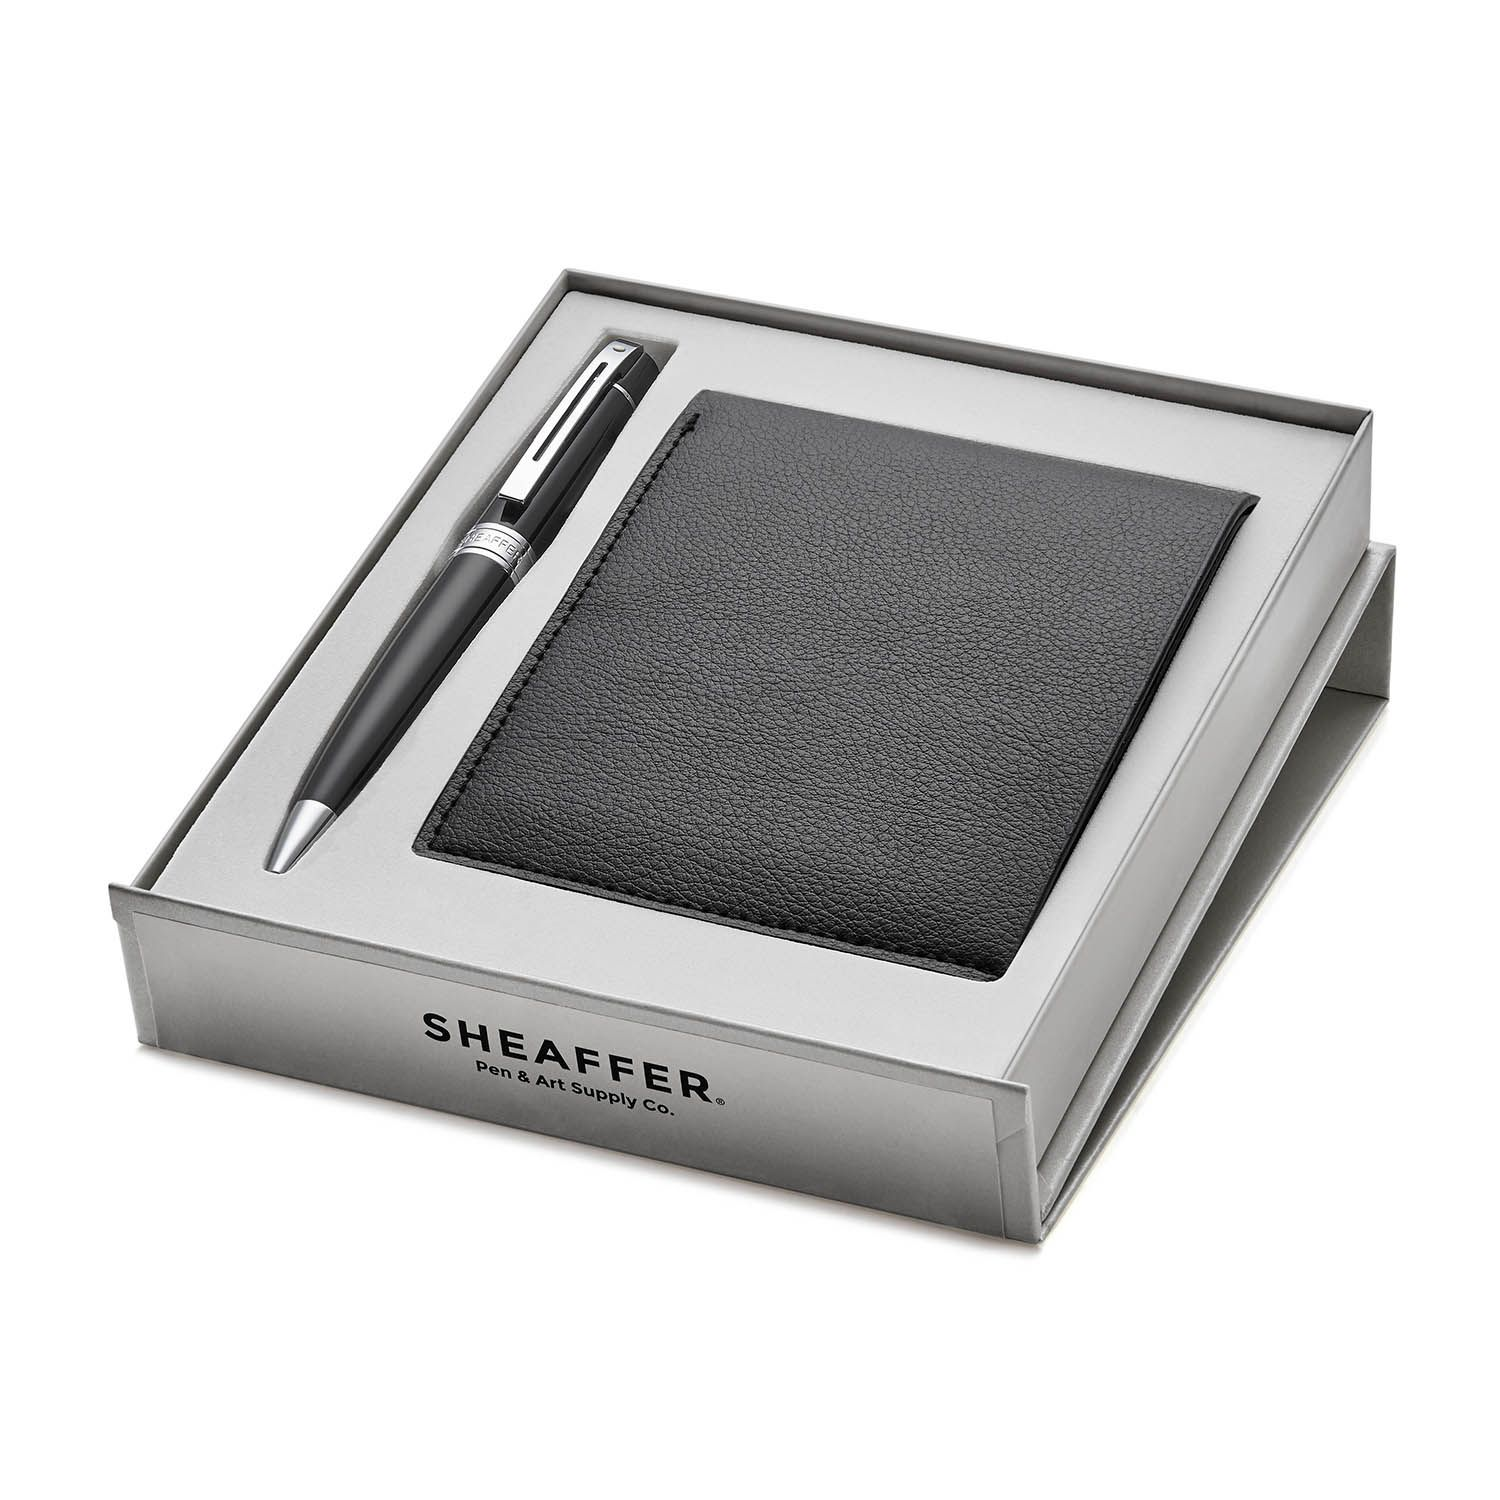 Sheaffer 9312 Ball Point Pen With Slim Wallet Rs. 1800